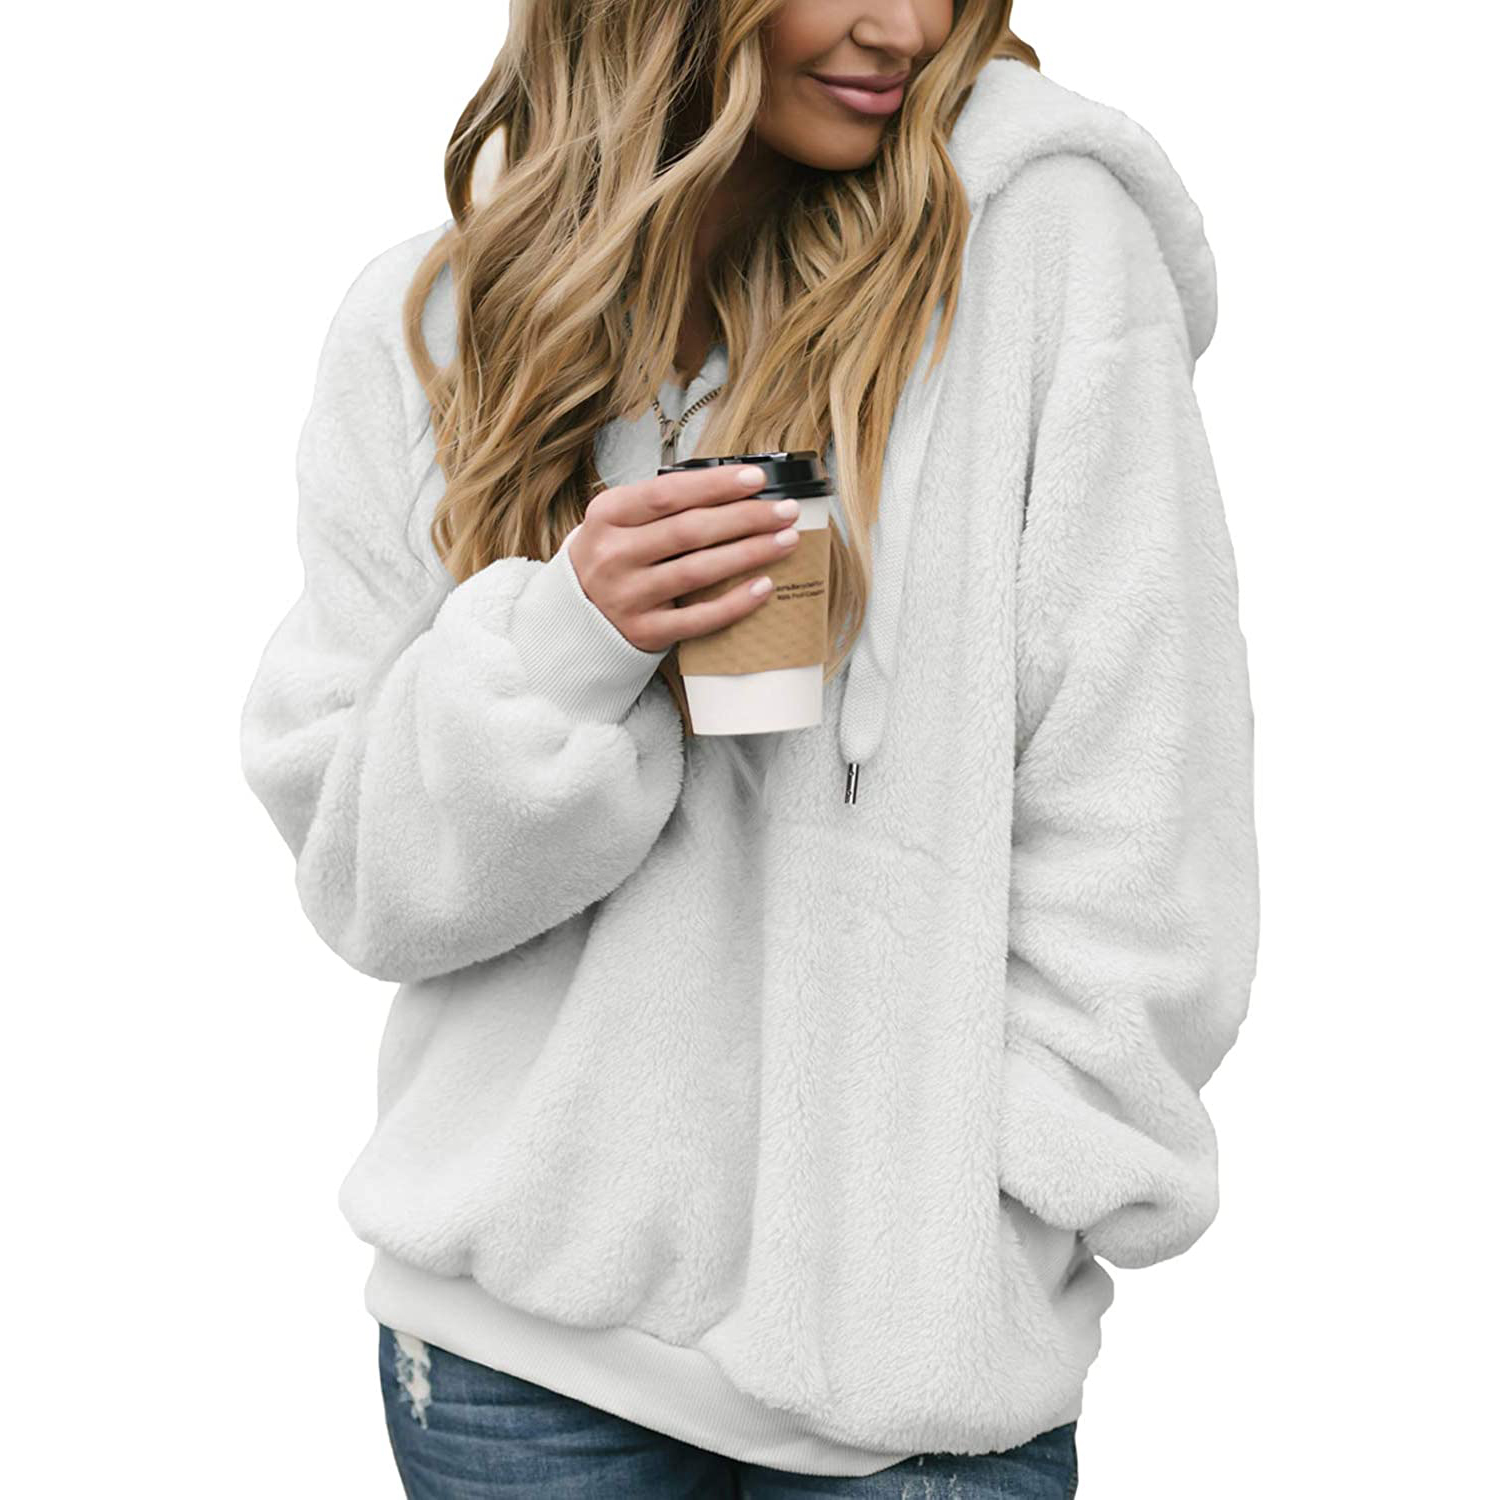 Dokotoo Womens Fuzzy Casual Loose Sweatshirt Hooded with Pockets Outwear